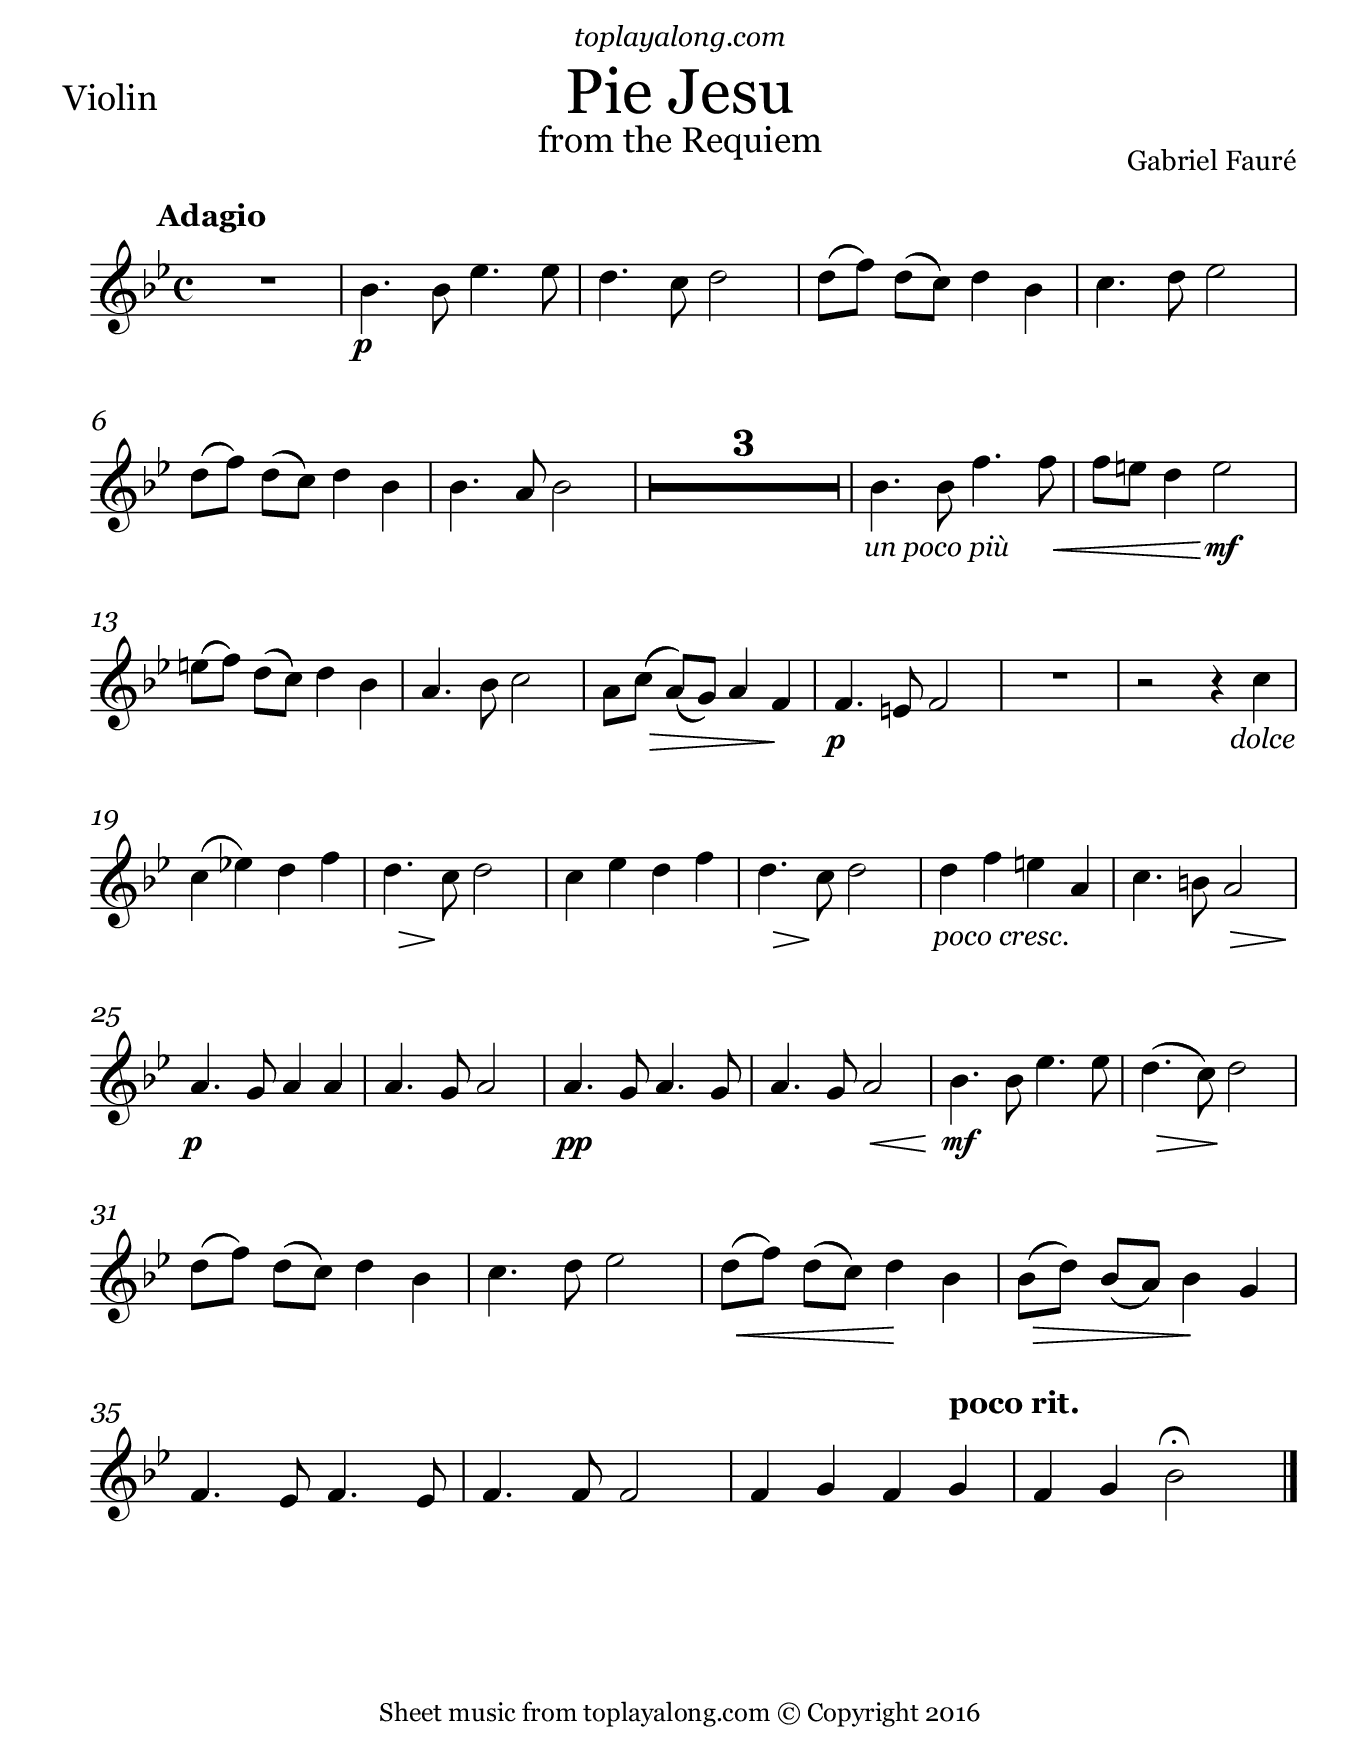 Pie Jesu from the Requiem by Fauré. Sheet music for Violin, page 1.